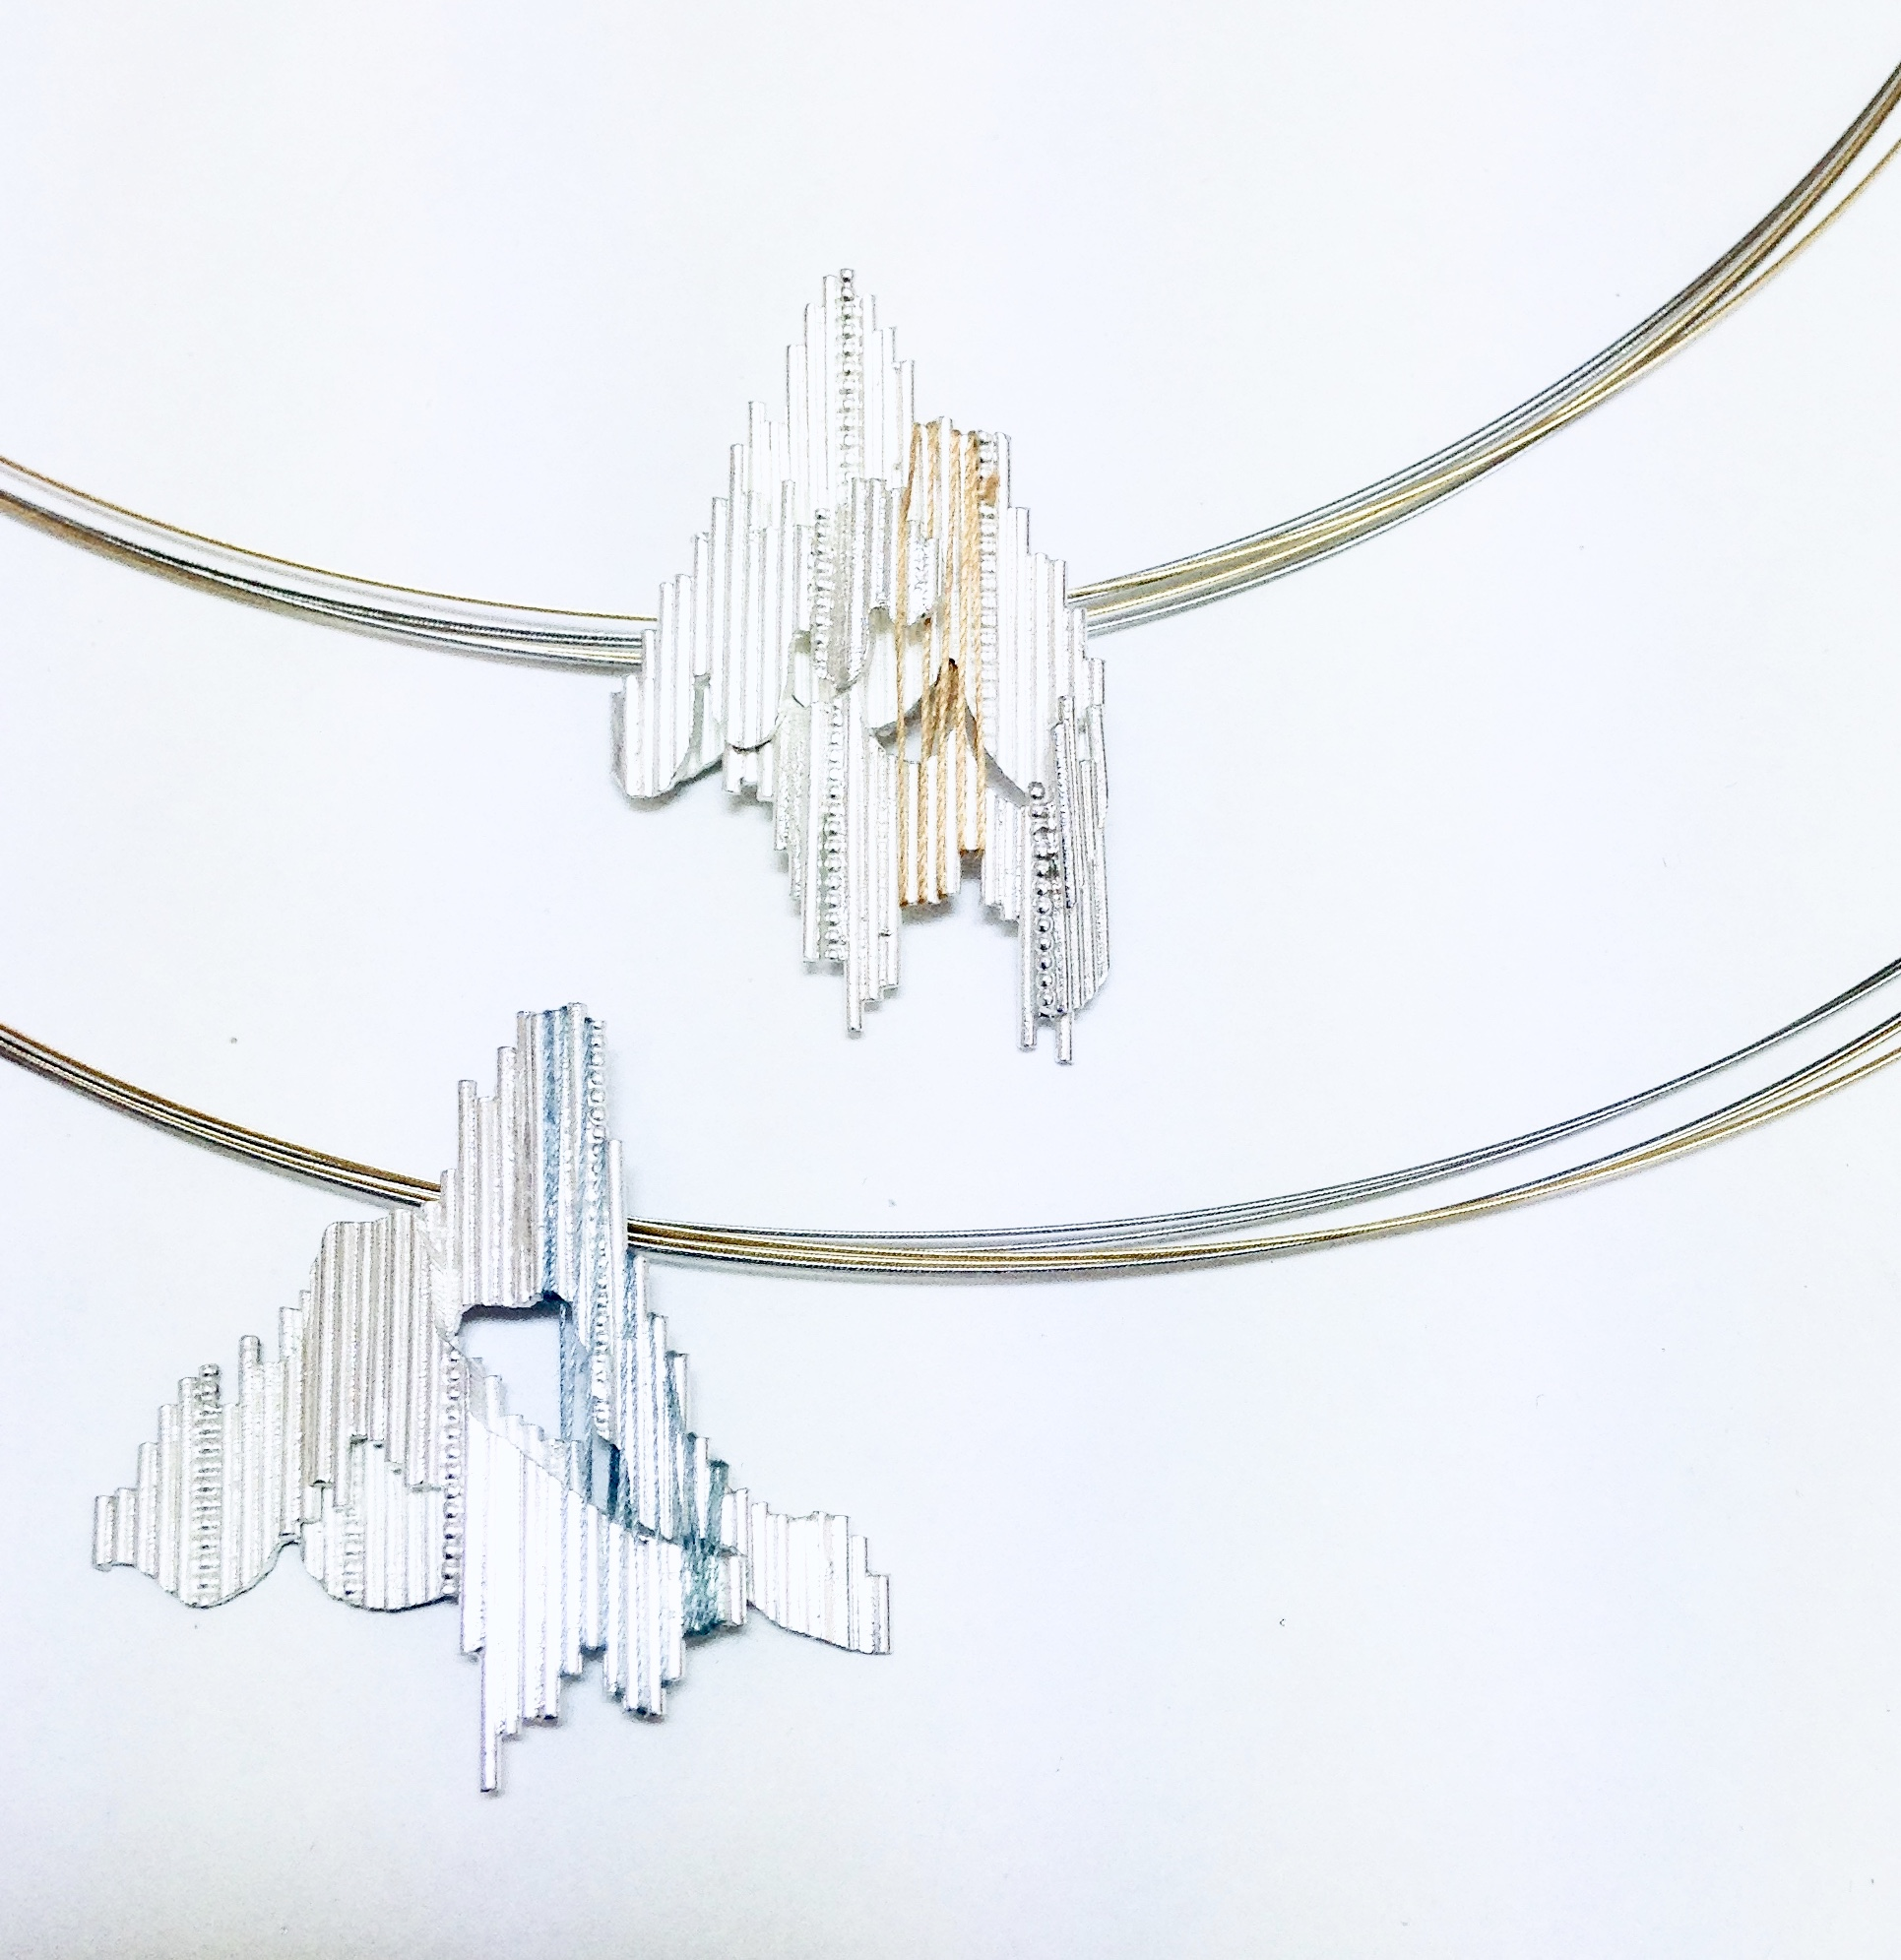 """Follow the Thread - Necklaces made for the Dazzle exhibition, """"Follow the Thread"""". Exhibition at the Dovecot Studios Edinburgh, 2013.Two Silver necklaces, with silk threads, steel neck wire with 18ct Gold Plating. The design depicts a fragmented landscape, with threads weaving through the linear structure to highlight the depth of form."""